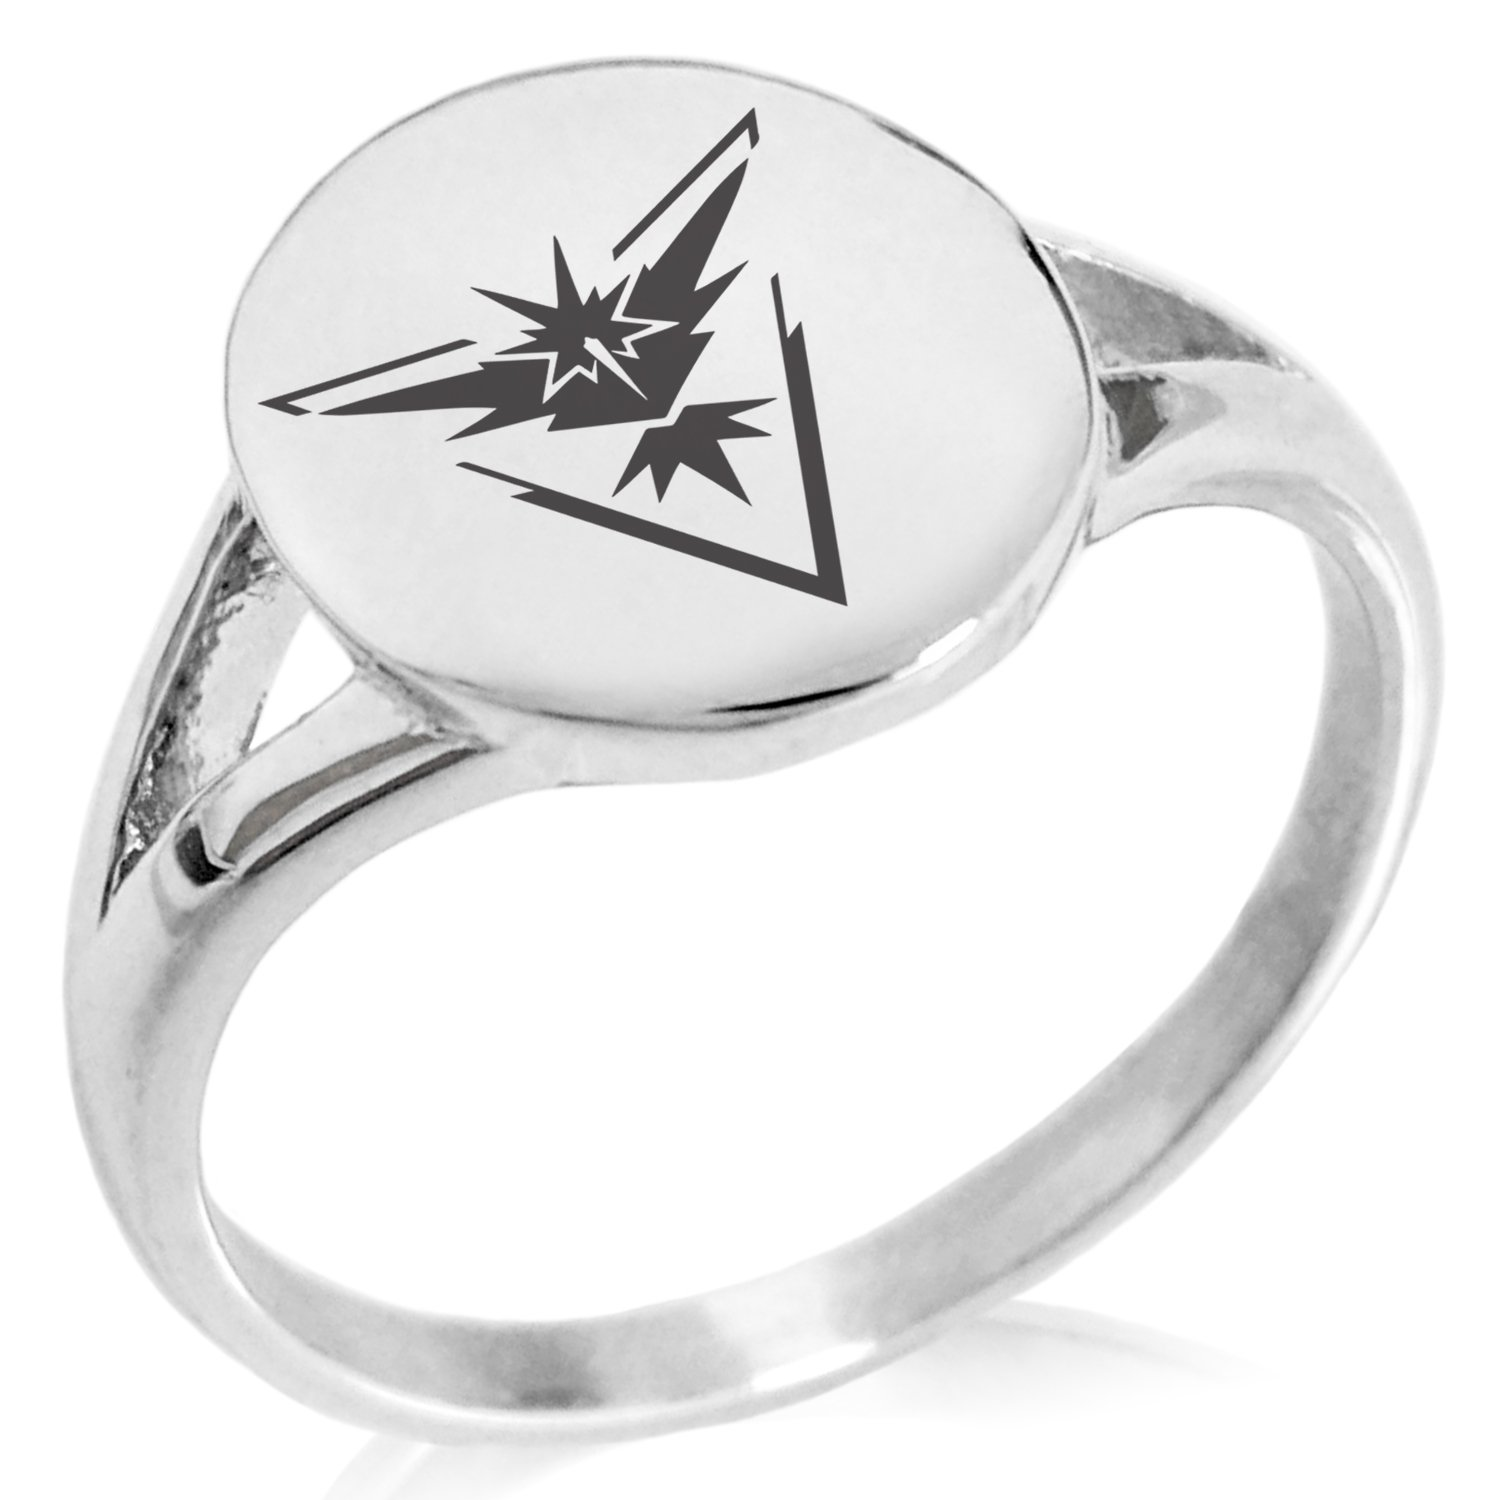 Tioneer Stainless Steel Team Instinct Zapdos Pokemon Minimalist Oval Top Polished Statement Ring, Size 8